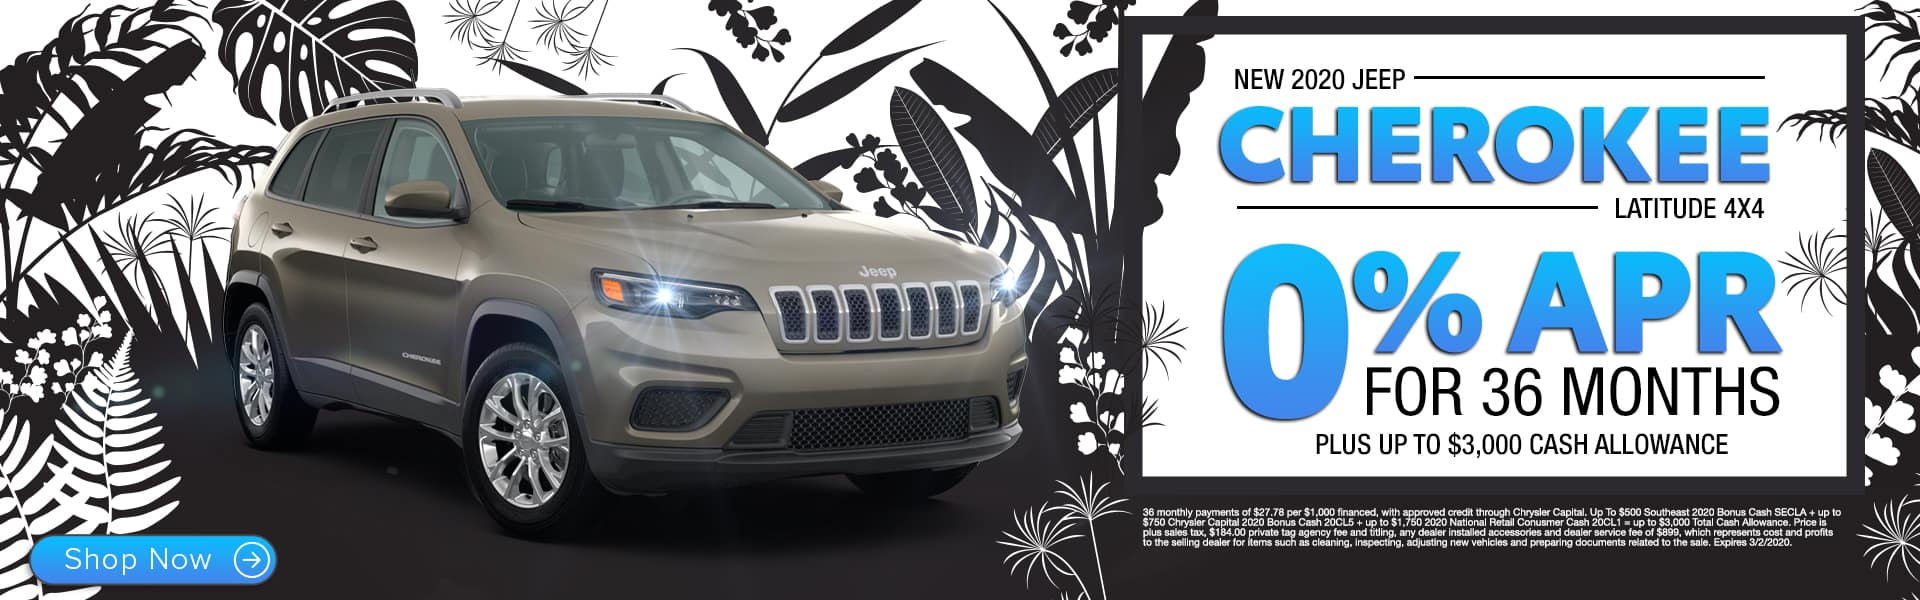 New 2020 Jeep Cherokee Latitude 4x4 | 0% APR For 36 Months Plus Up To $3,000 Cash Allowance